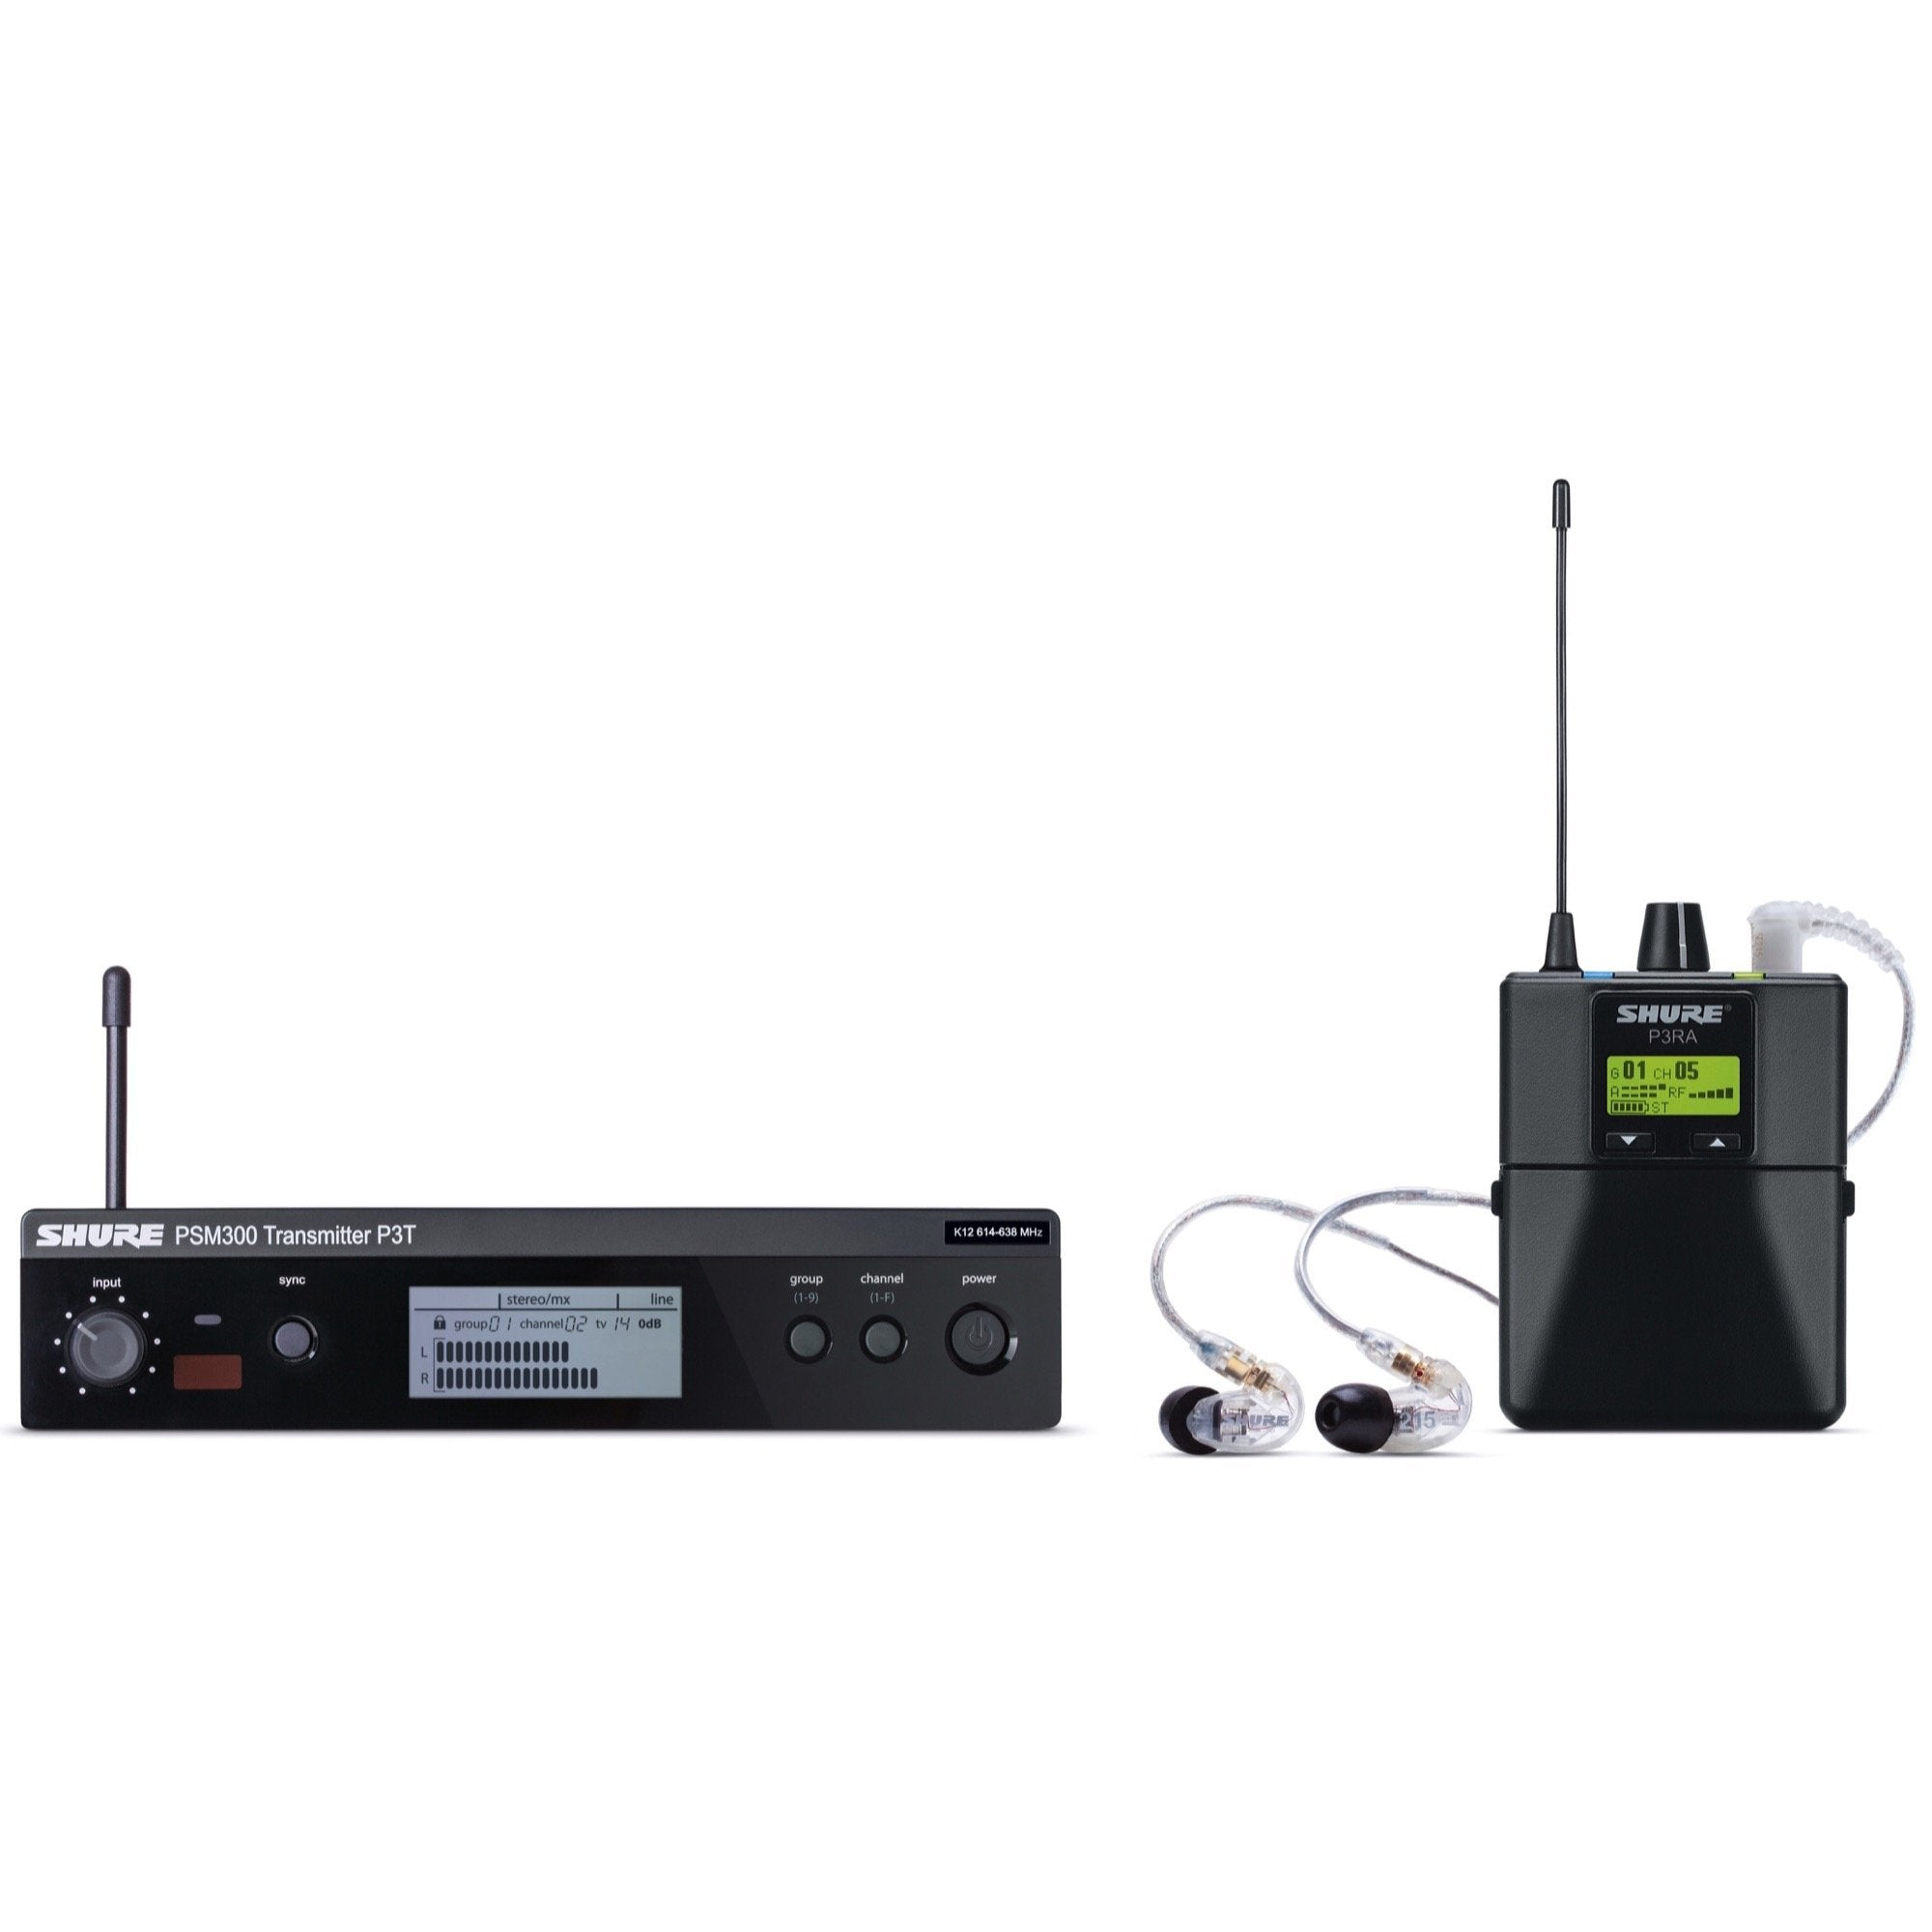 Shure PSM300 IEM Wireless In-Ear Monitor System with SE215CL Earphones, Band G20 (488.150 - 511.850 MHz)